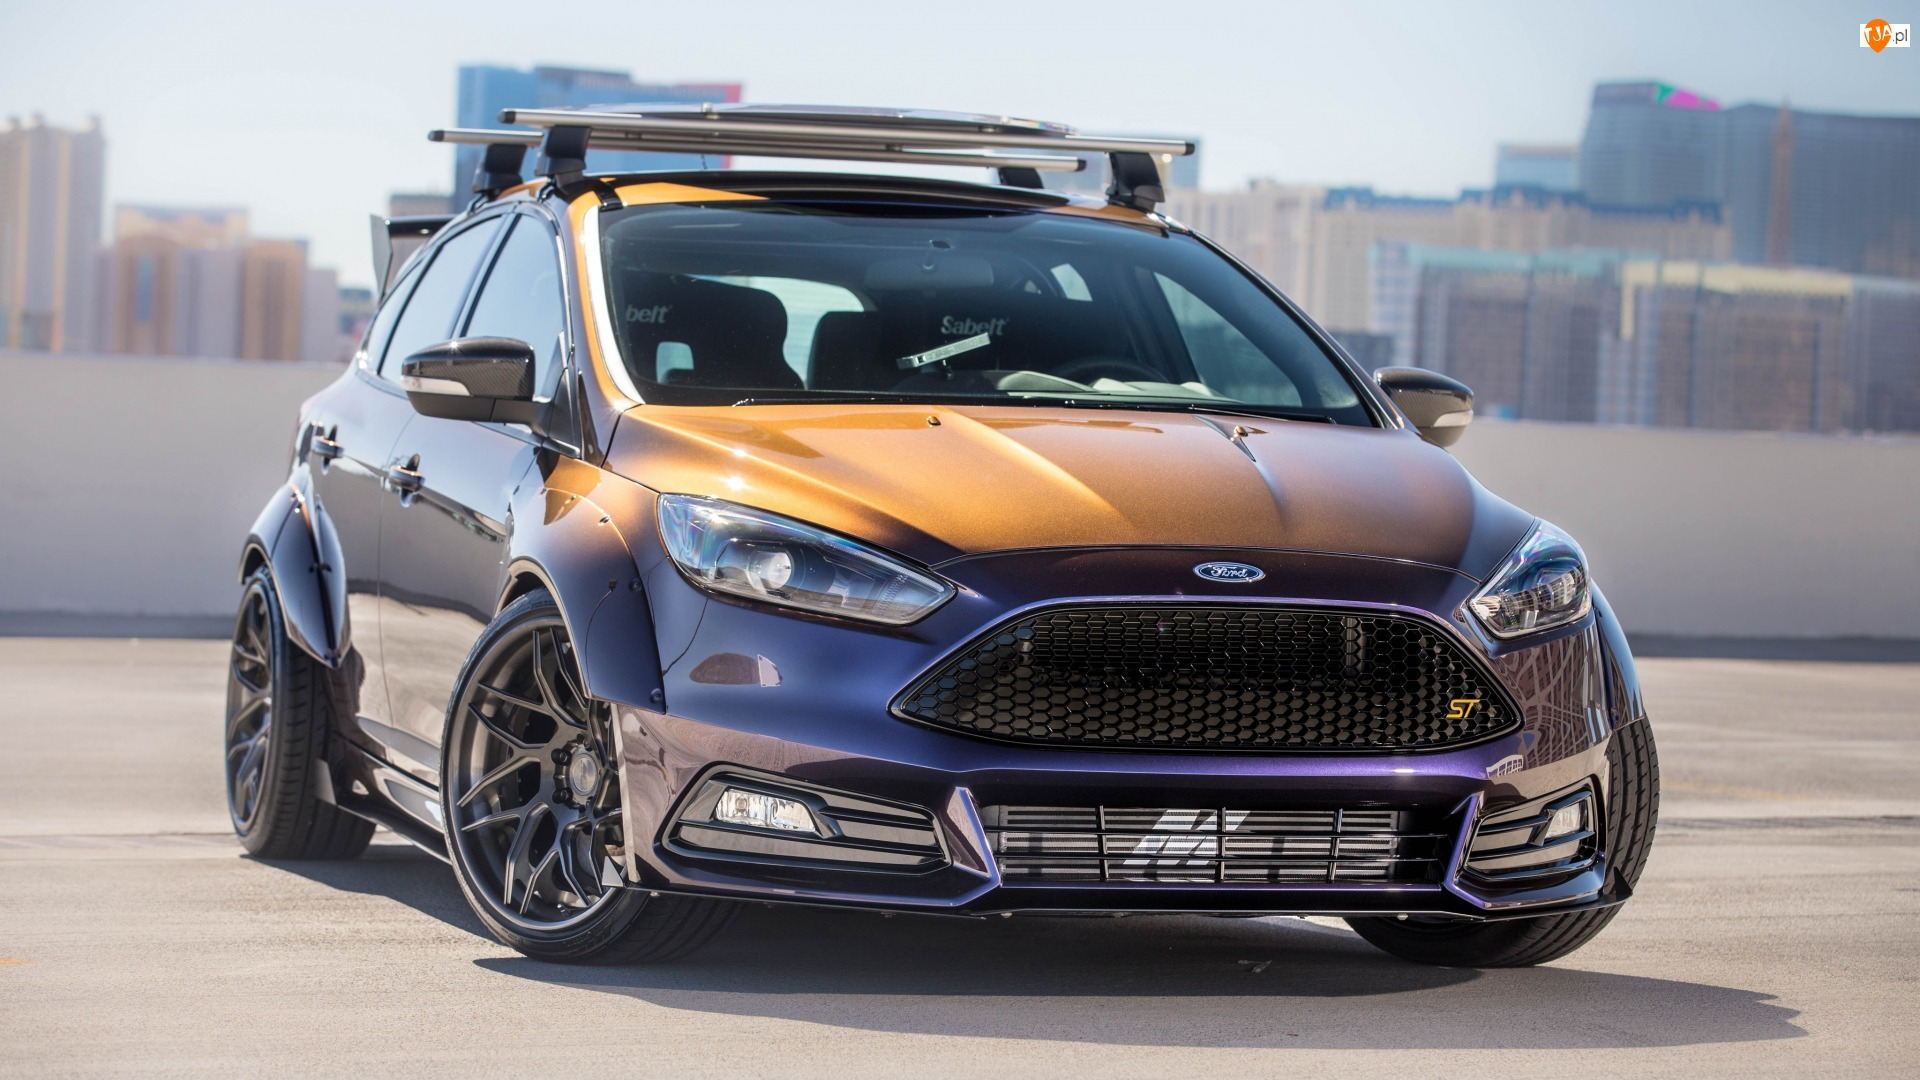 2017, Ford Focus ST Mk3, Blood Type Racing